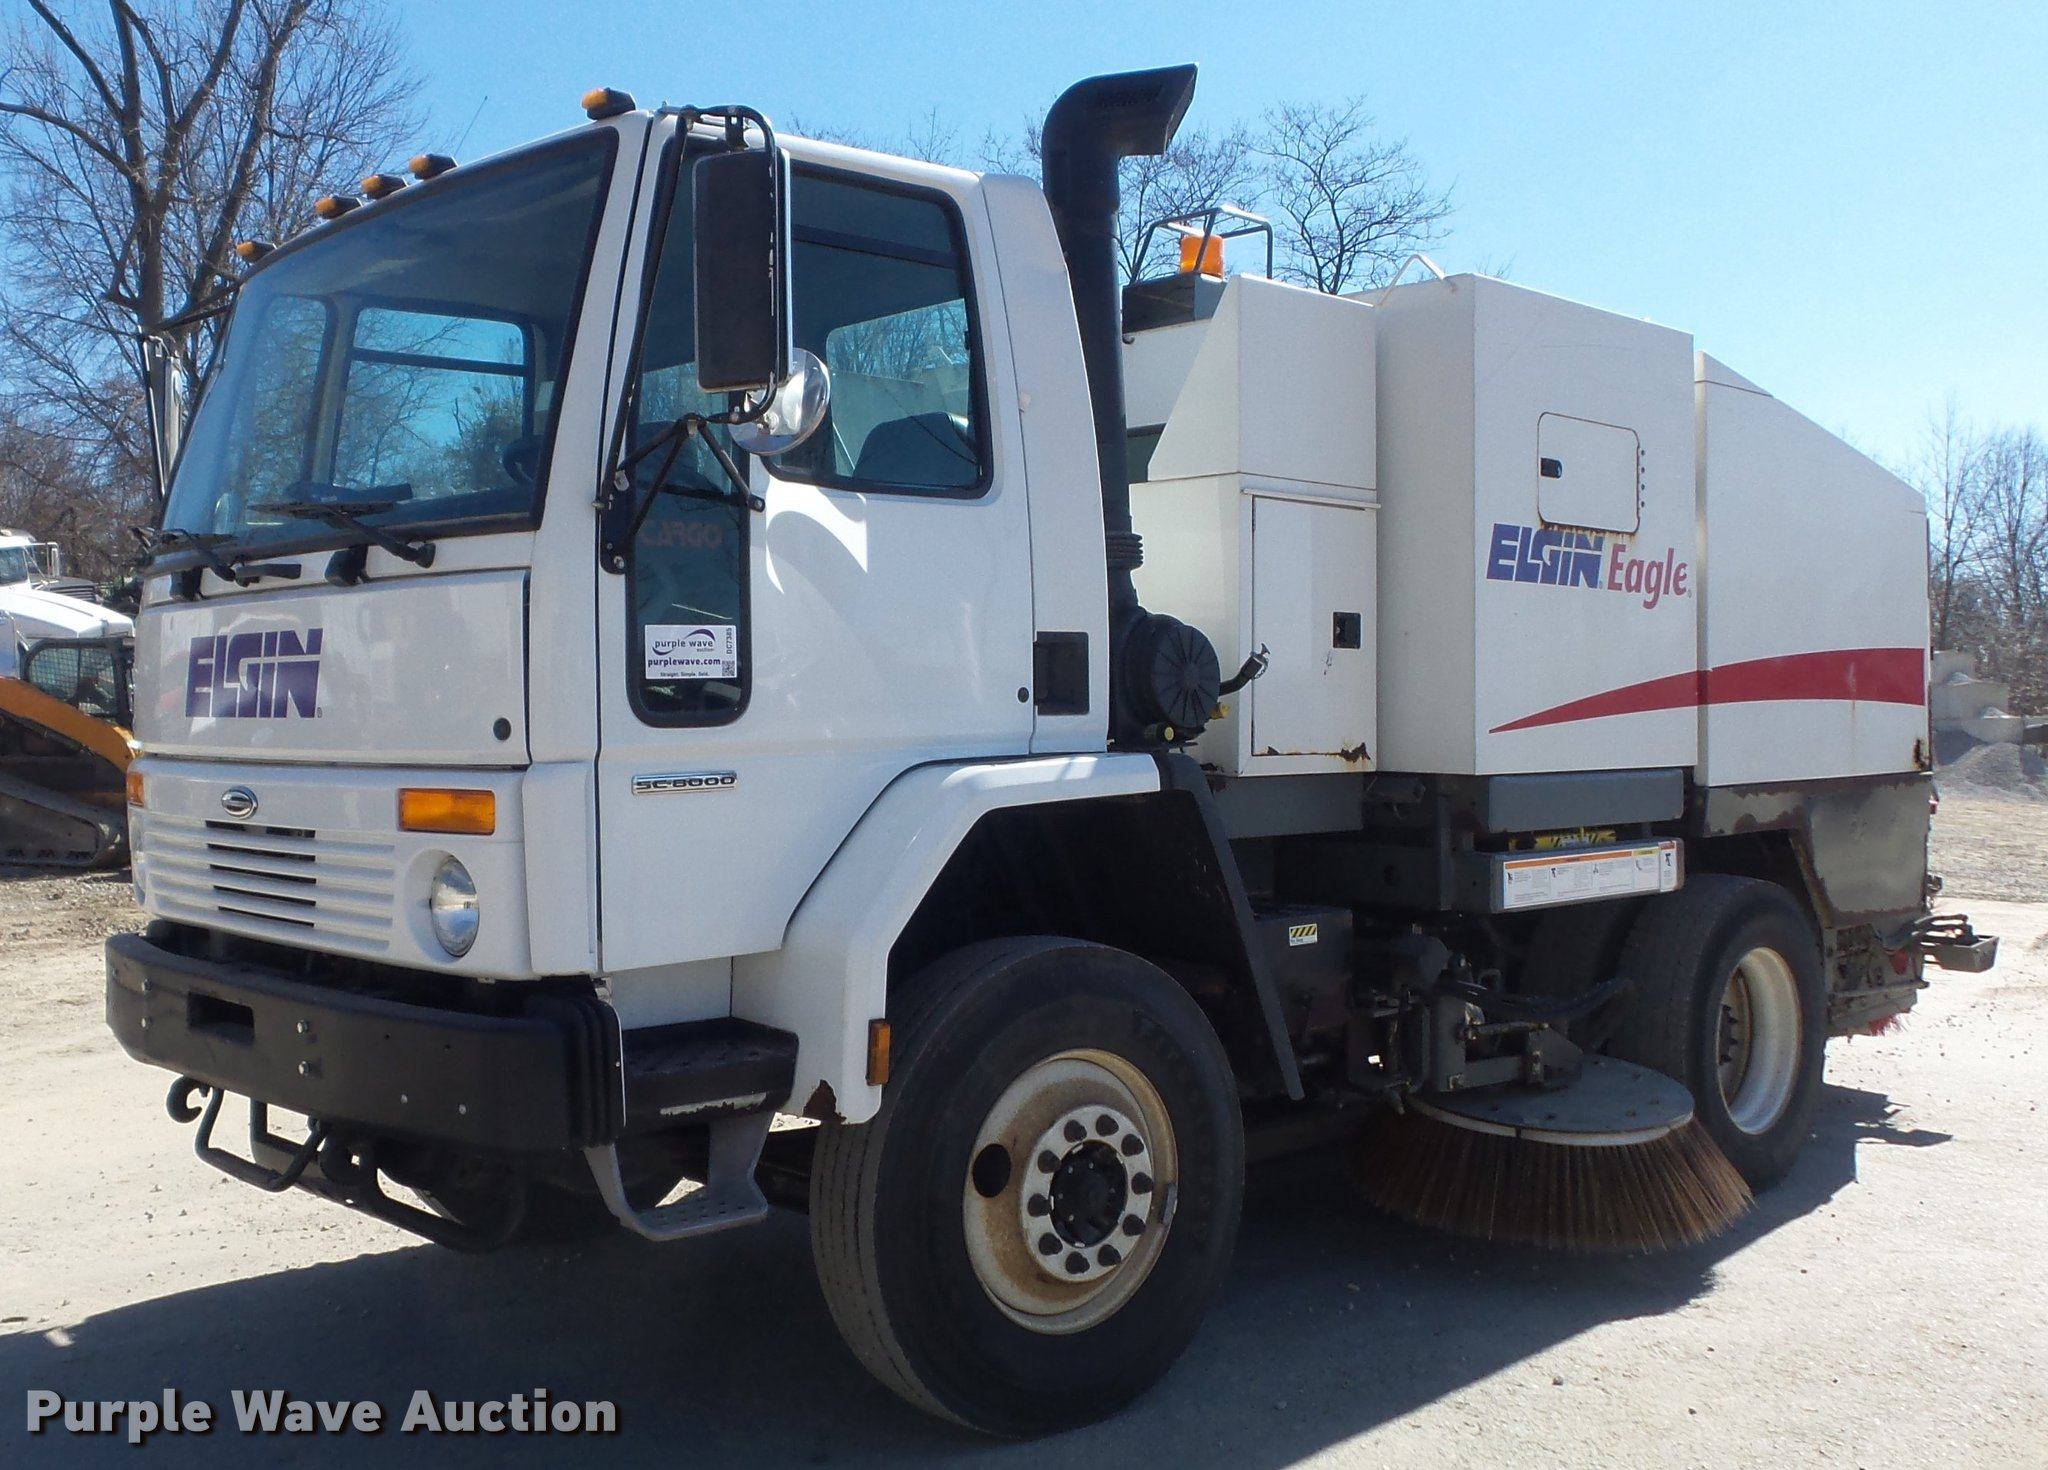 DC7385 image for item DC7385 2004 Elgin Eagle series F street sweeper